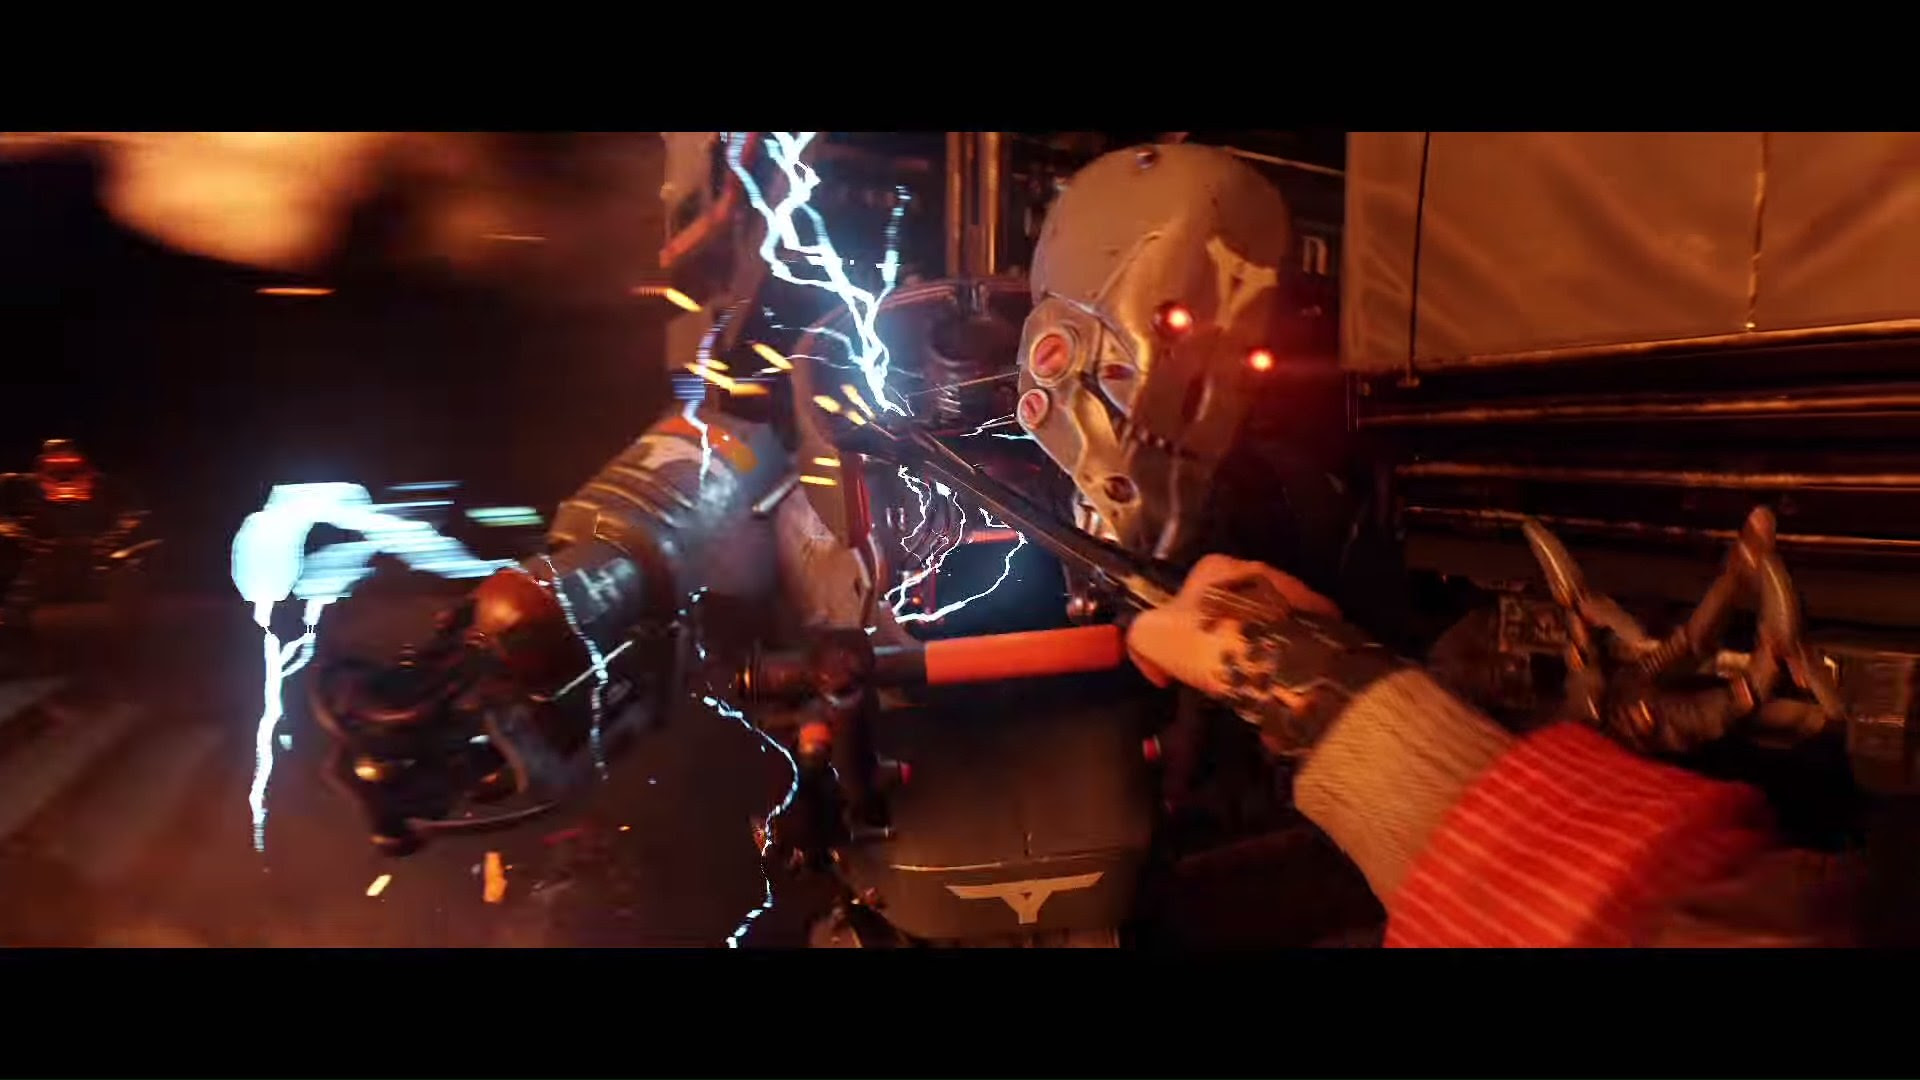 Review Wolfenstein Ii The New Colossus Serves Up The Splatter